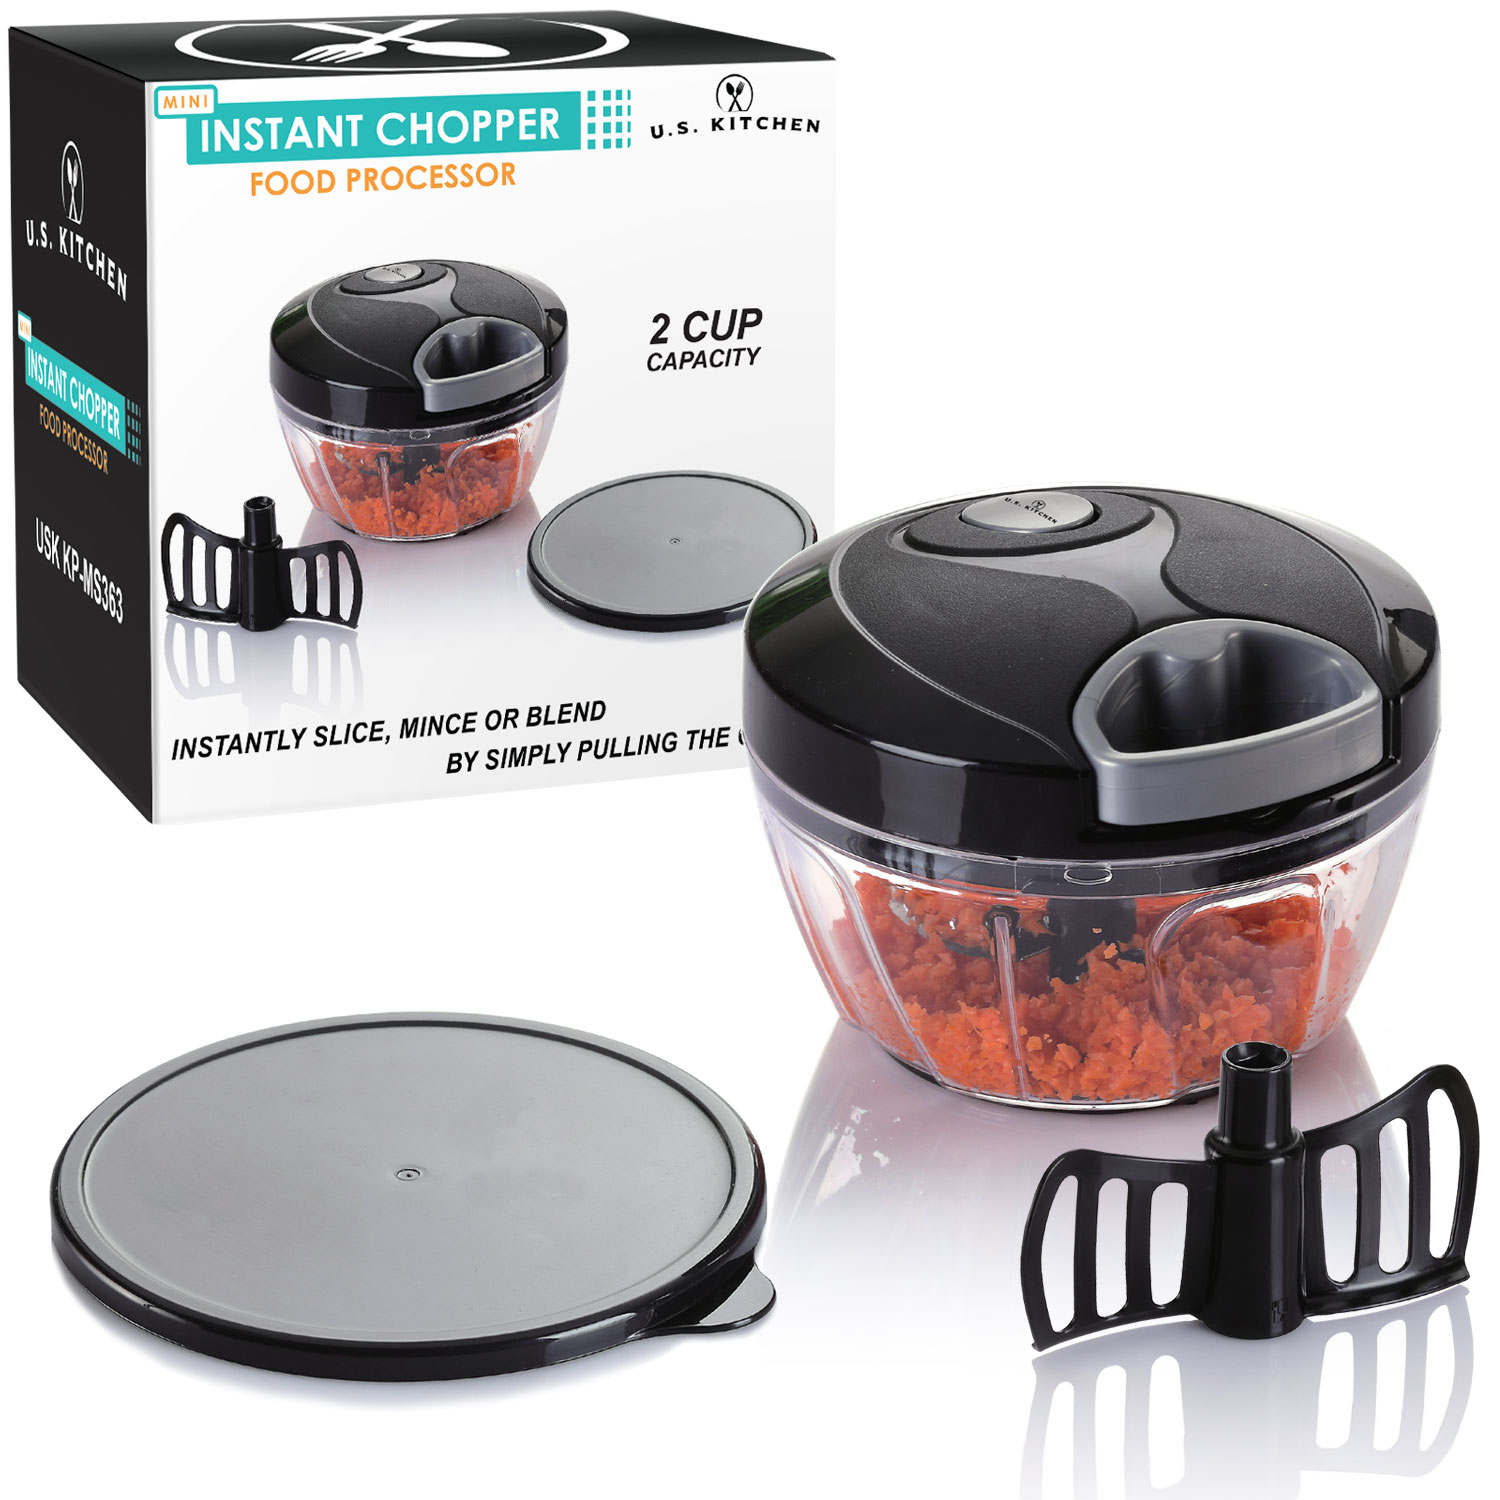 U.S. Kitchen Supply Mini Instant Chopper Food Processor with Chopping & Mixing Blades - Slice, Mince or Blend Vegetables